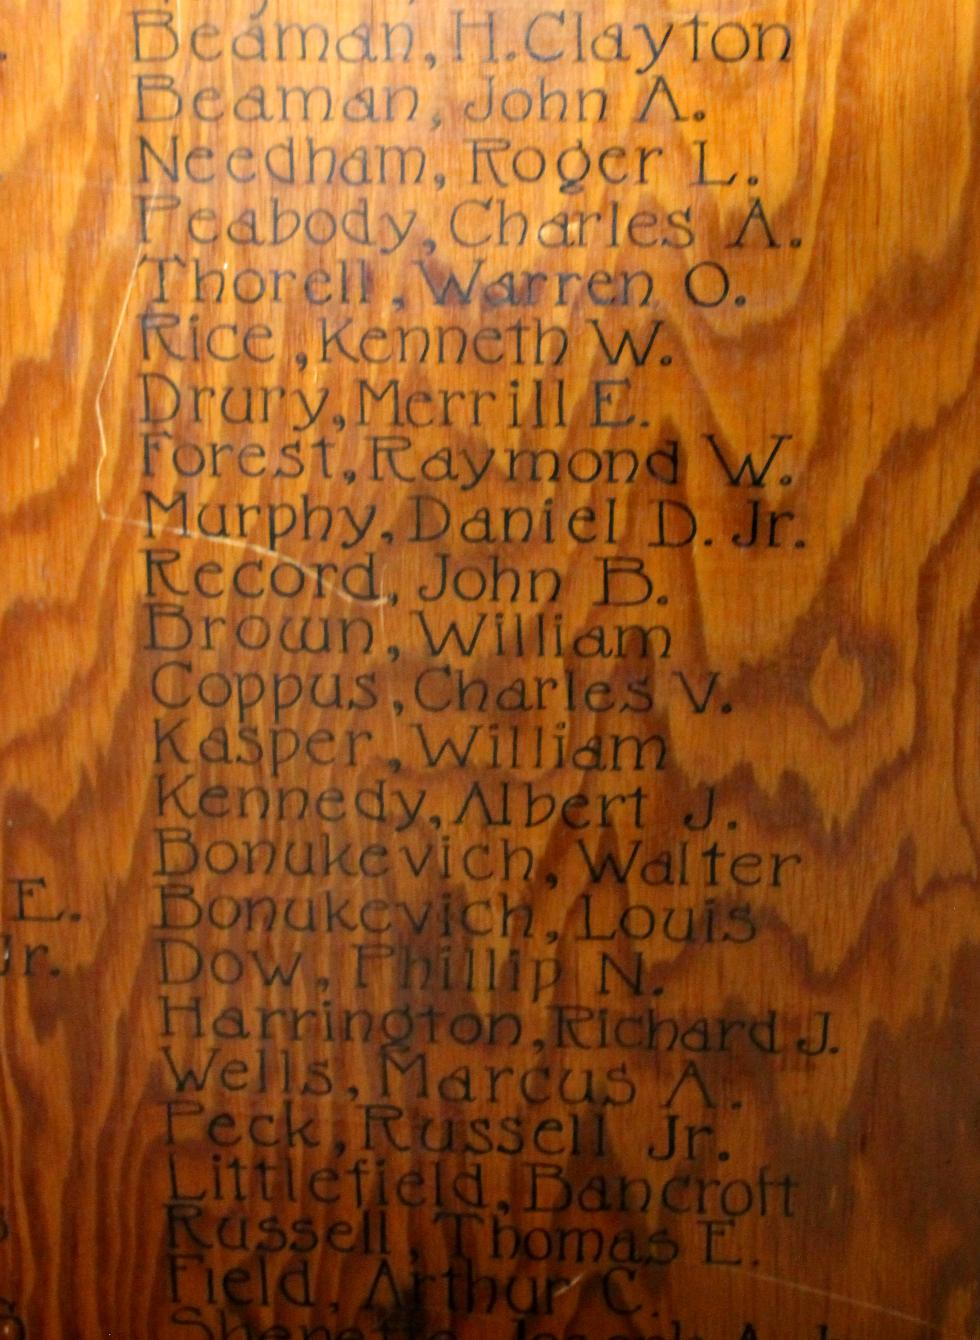 Princeton Massachusetts World War II Veterans Honor Roll